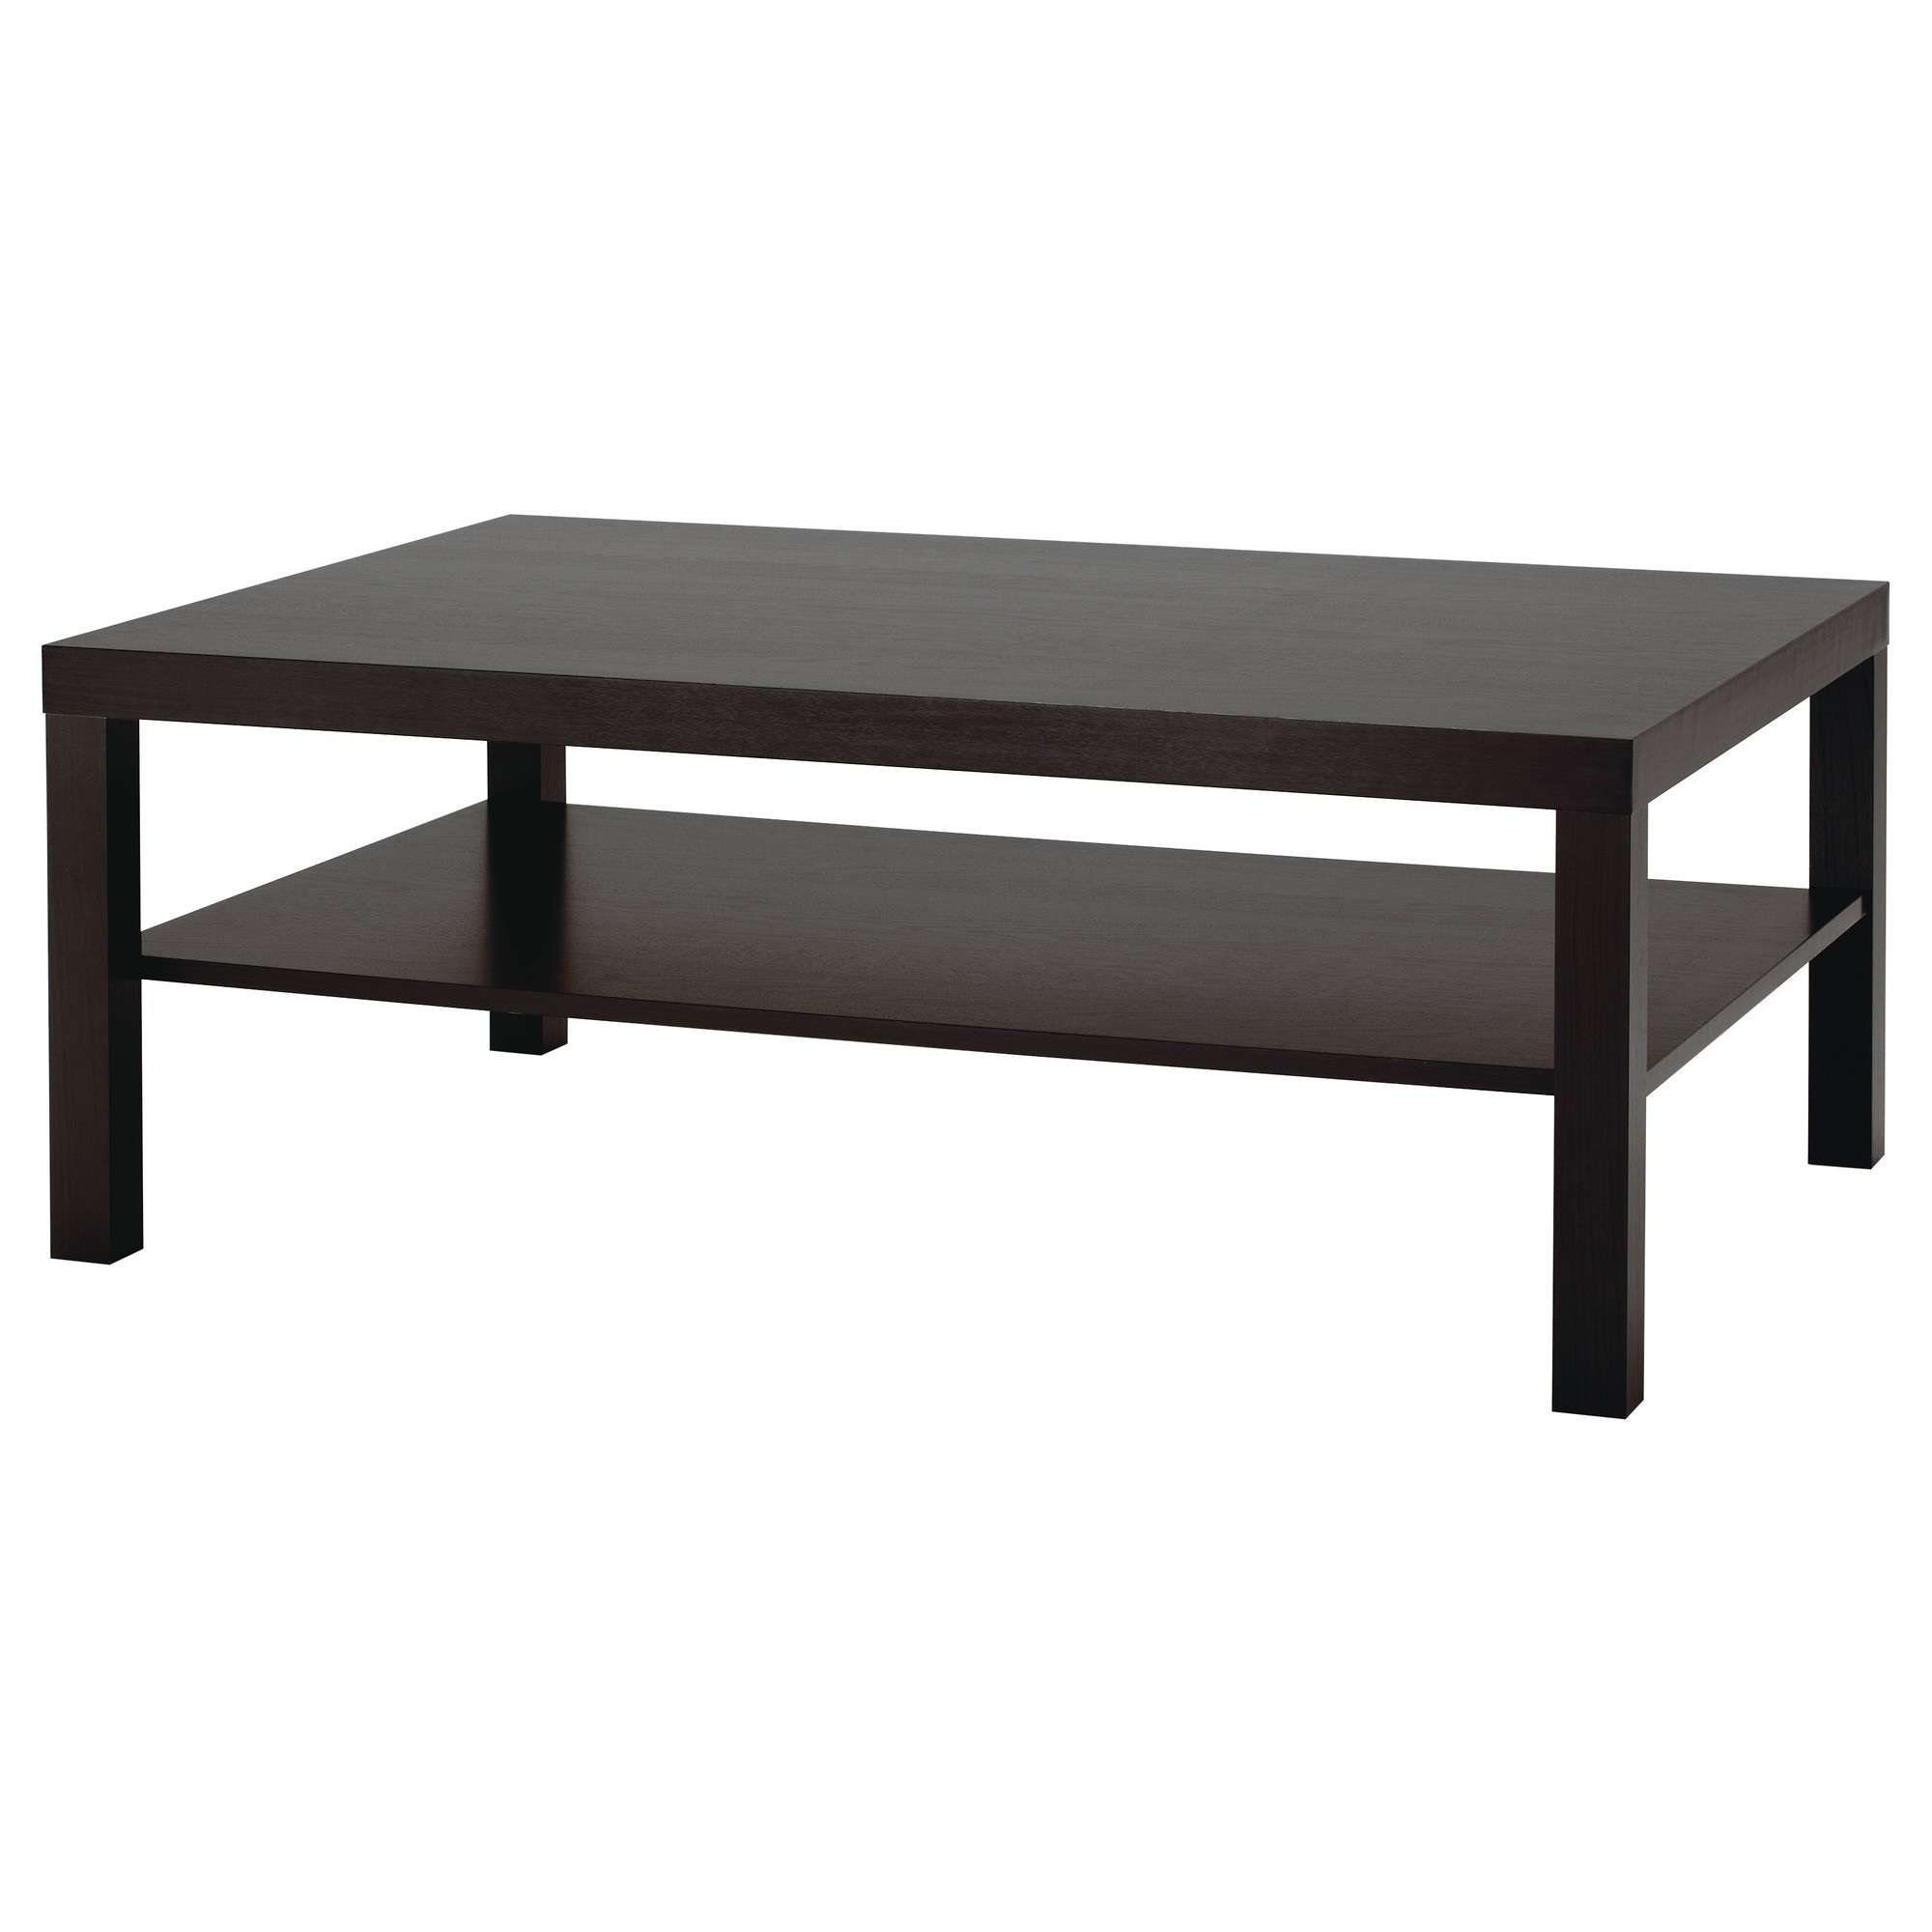 Trendy Low Glass Coffee Tables Pertaining To Coffee Tables : Low Height Coffee Table Small Designs Silver Clear (View 15 of 20)